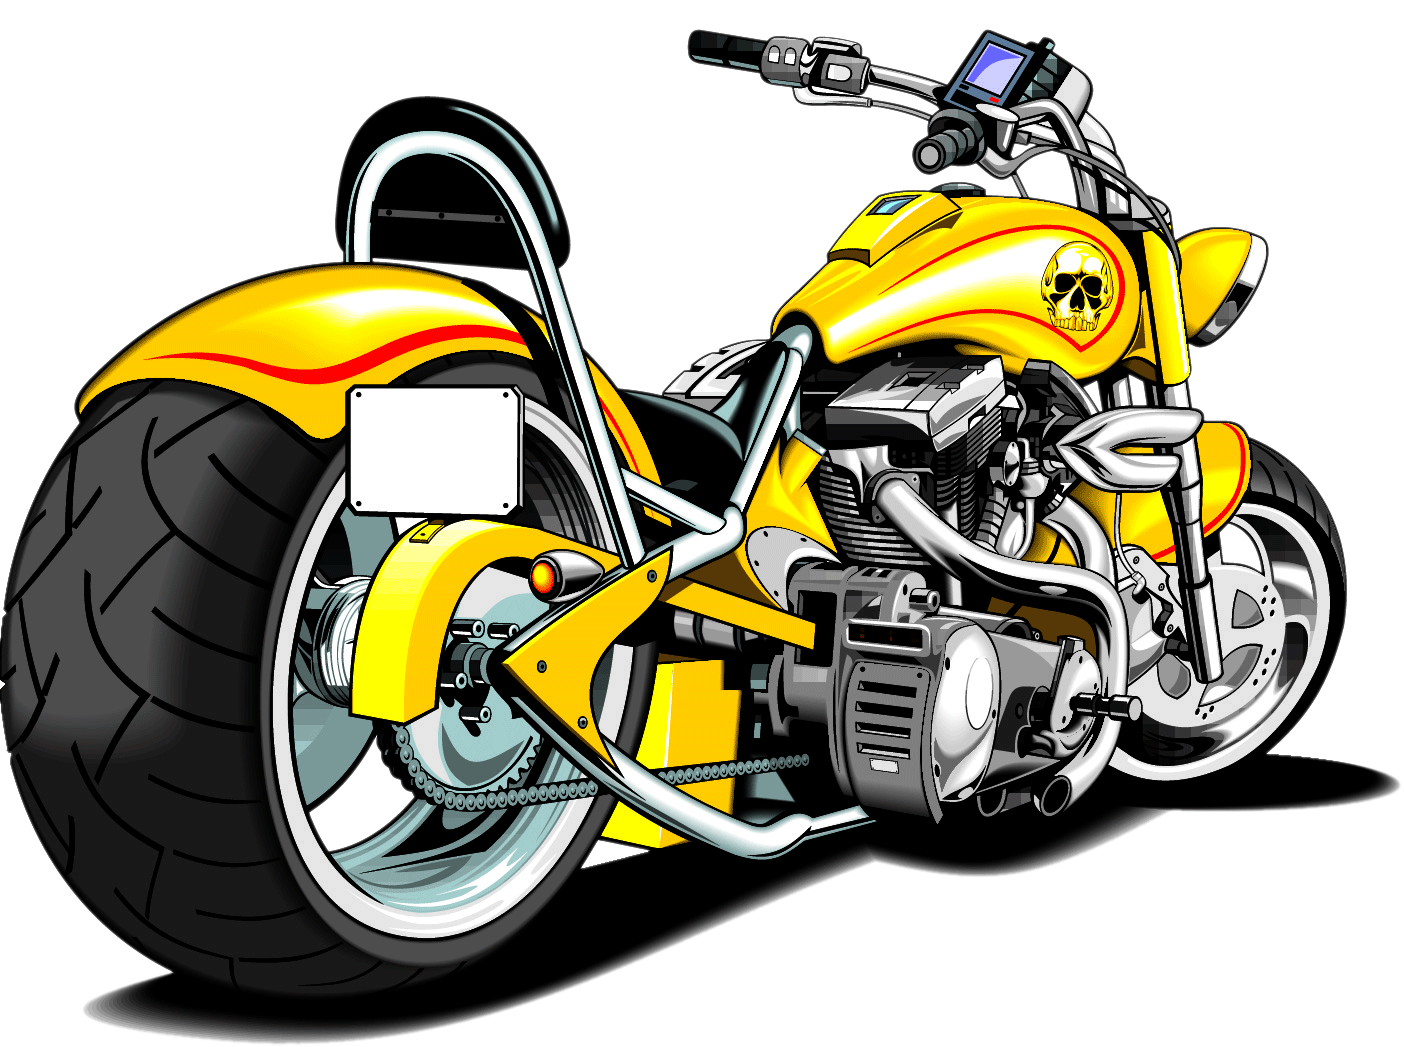 Transparent motorcycle clipart. Harley silhouette at getdrawings